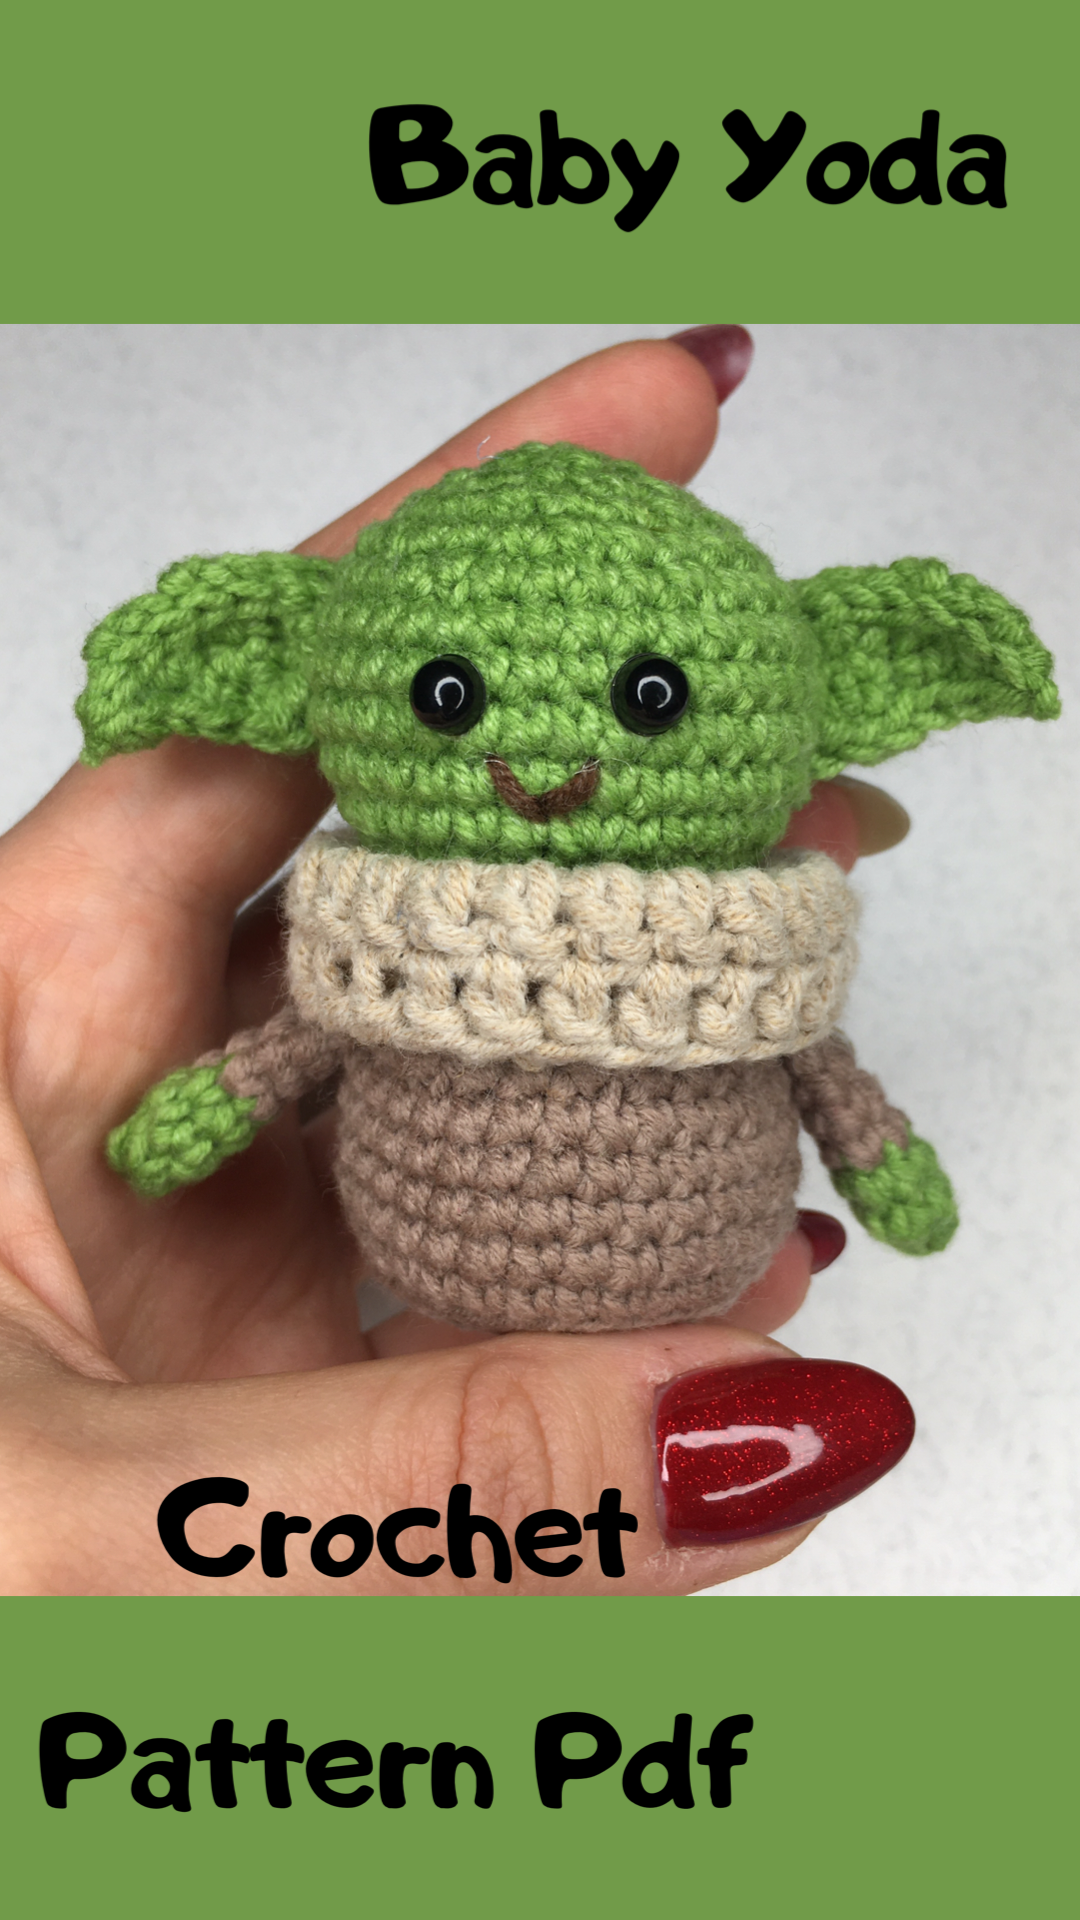 Baby yoda crochet pattern child amigurumi toy  Etsy  Baby yoda crochet pattern child amigurumi toy  Etsy